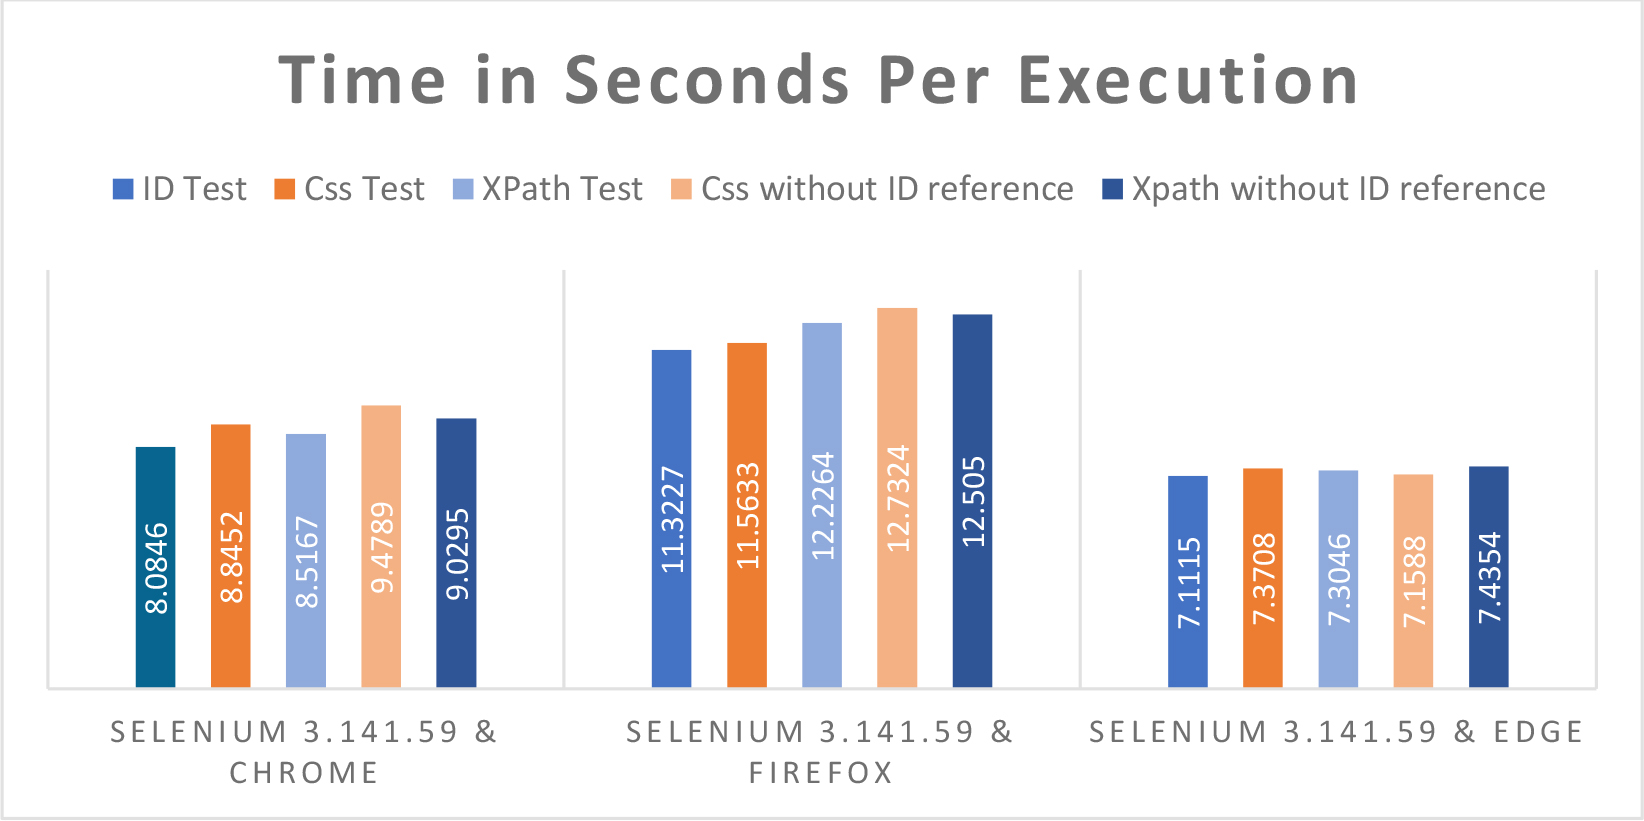 Time in Seconds Per Execution